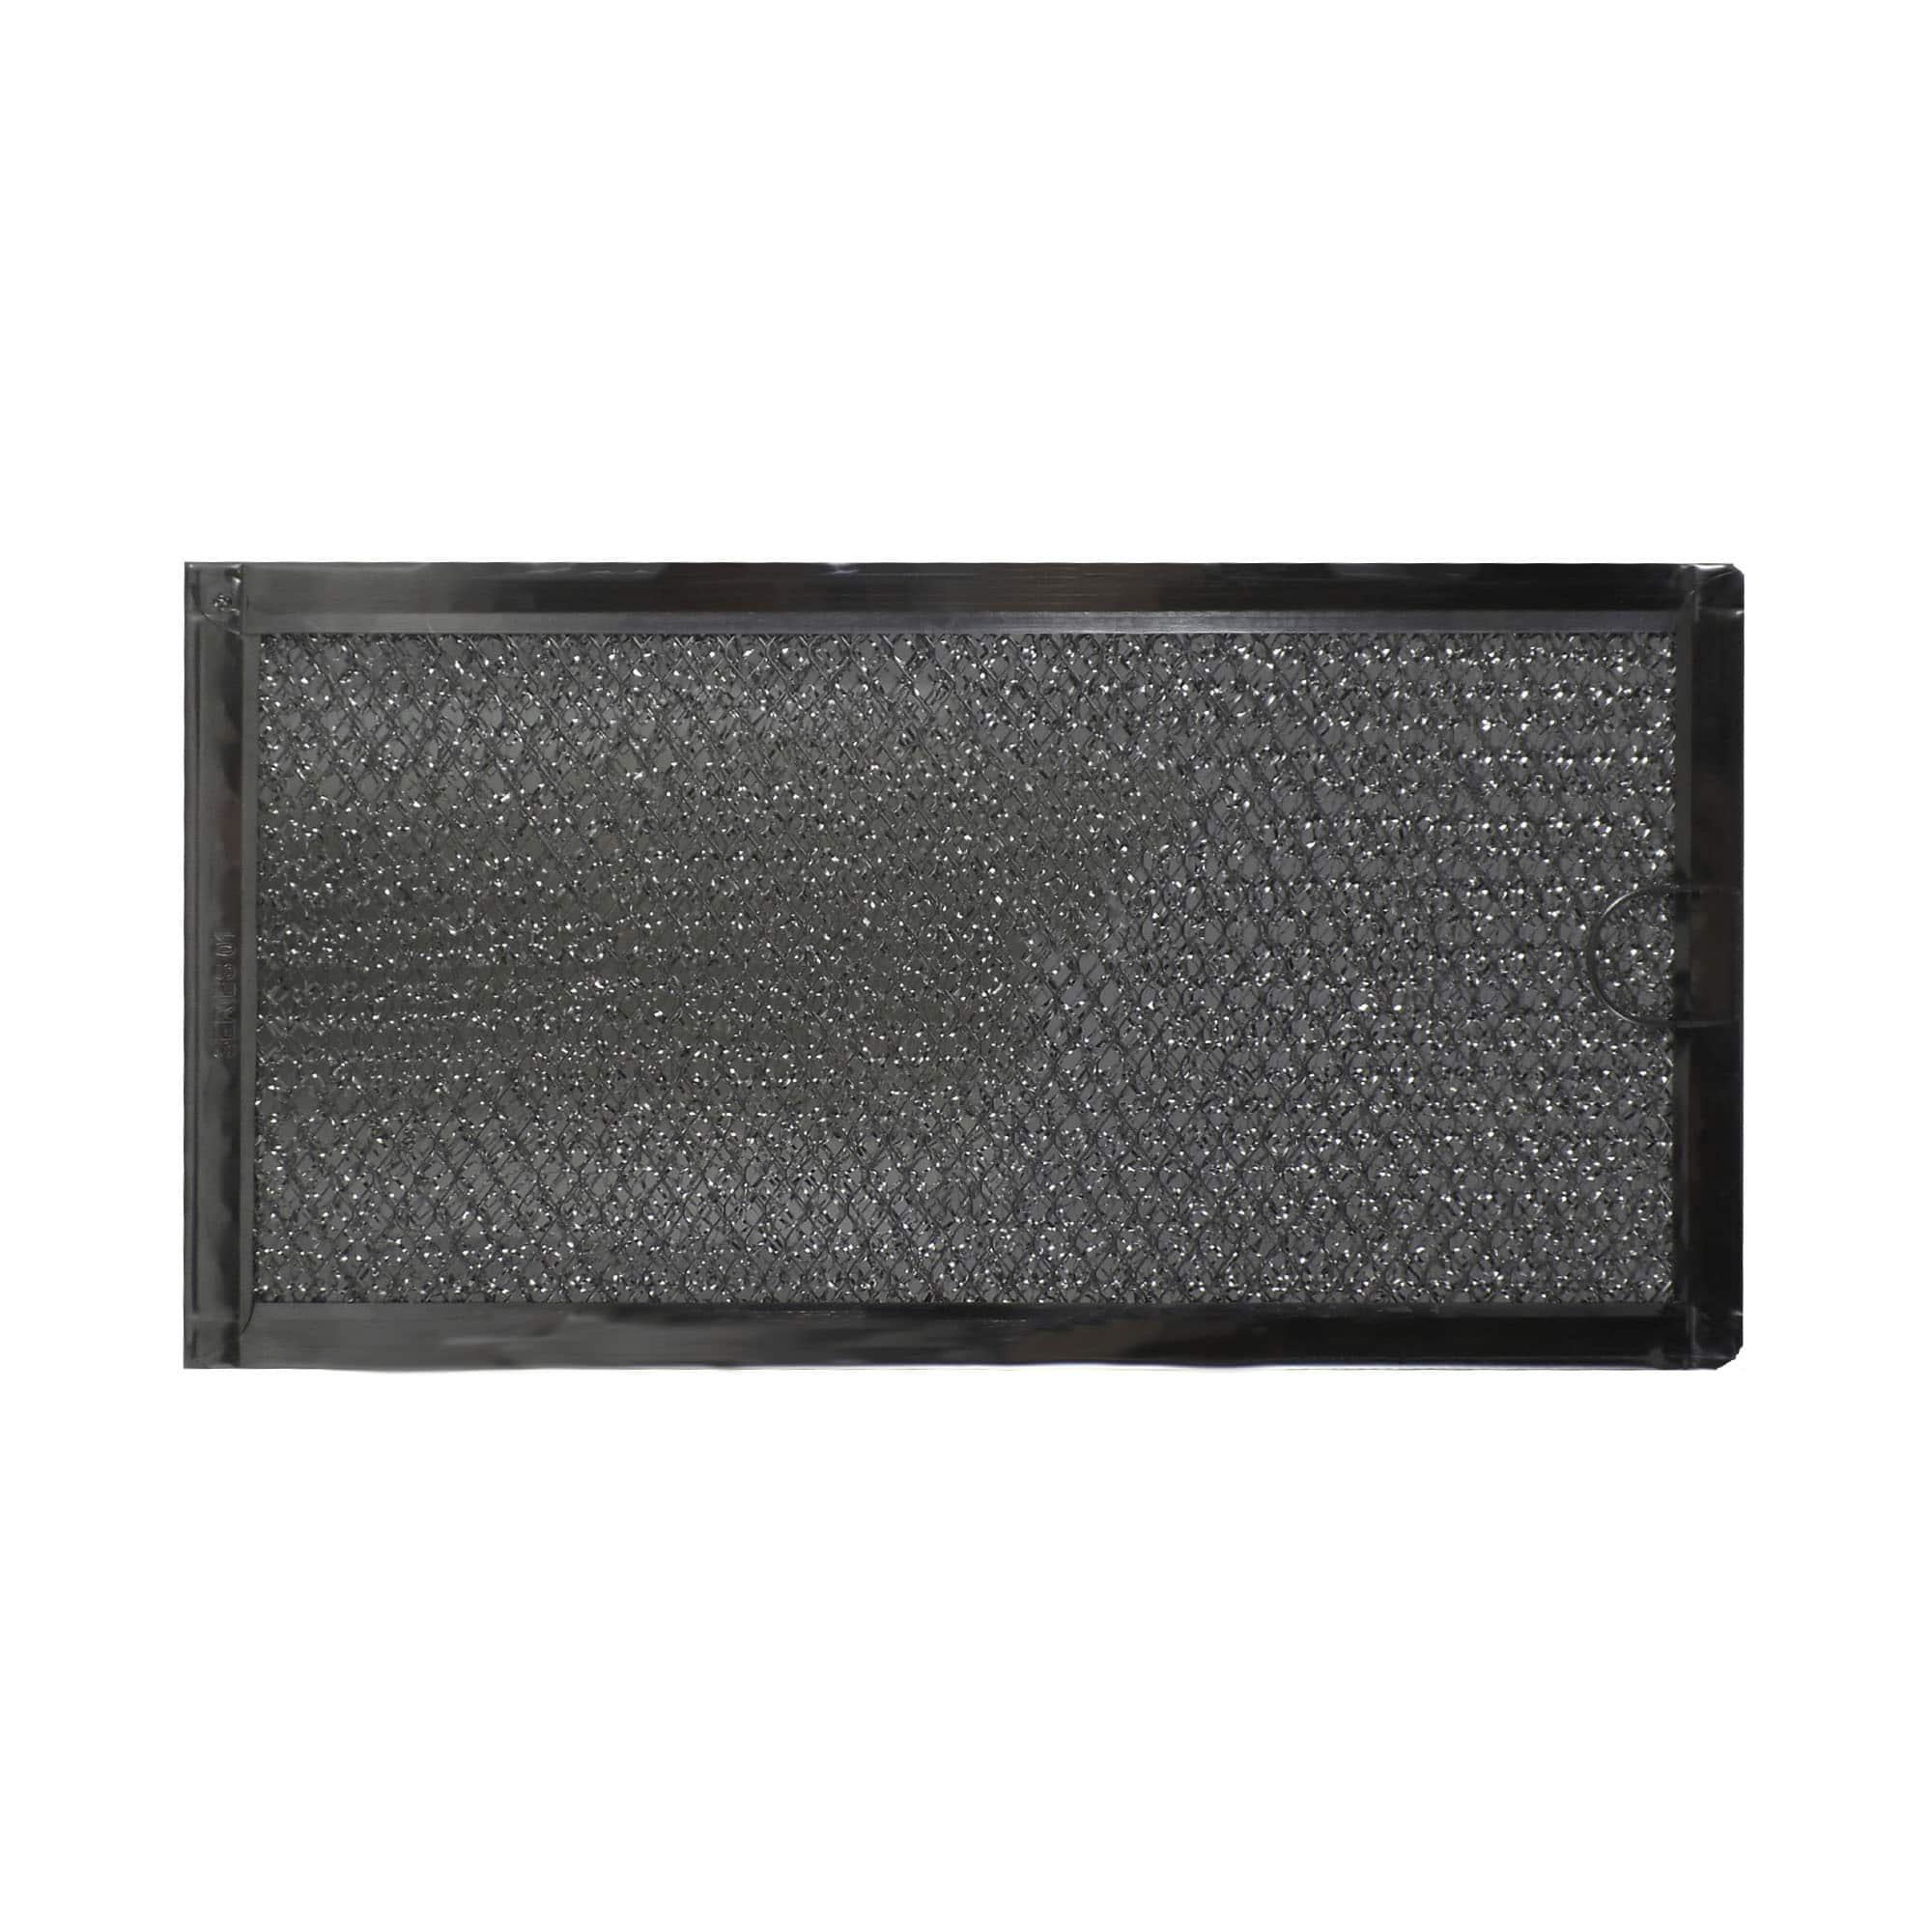 Whirlpool 8206229a Aluminum Mesh Range Hood Filter Replacement